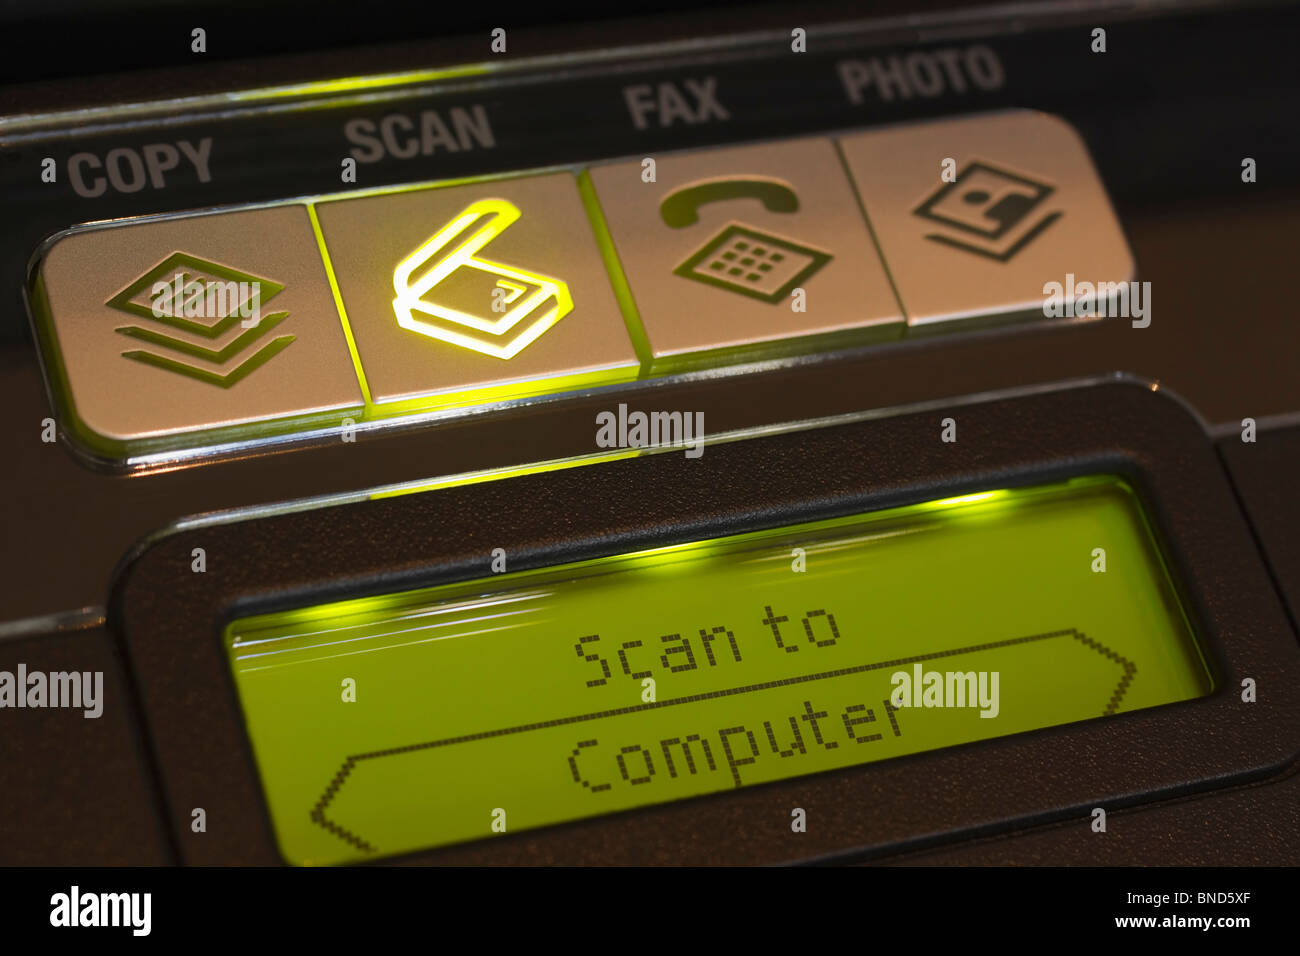 Control panel on a multifunction or All-In-One printer indicating selection of the scan option. - Stock Image